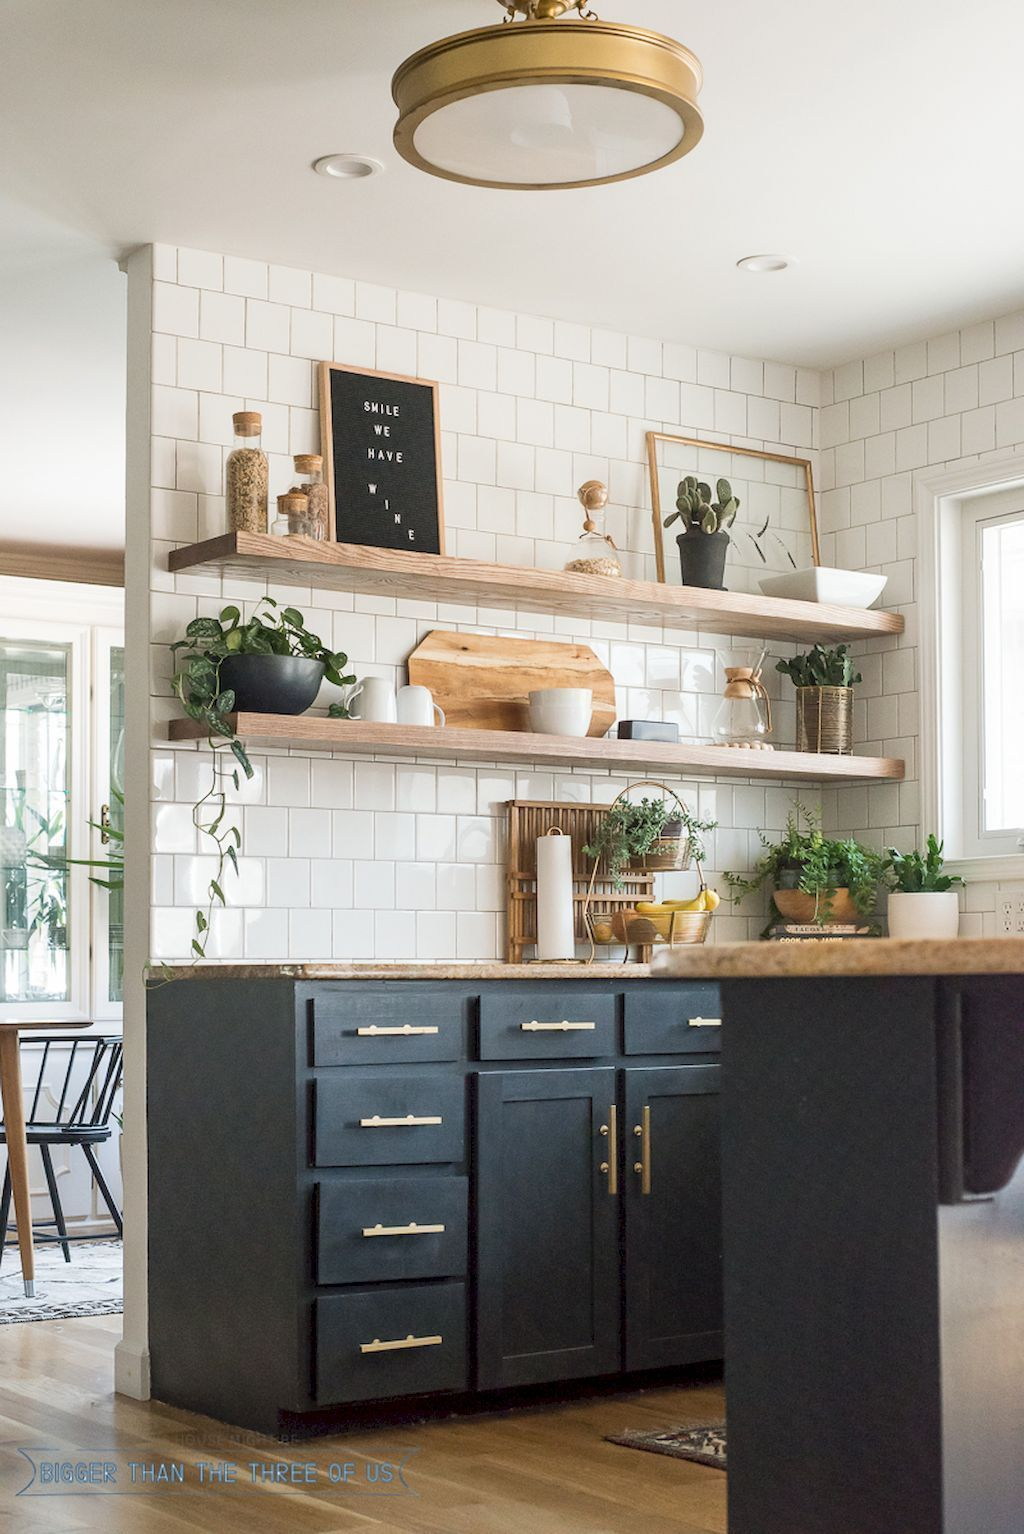 90-inspirations-for-small-kitchen-remodel-ideas-on-a-budget images